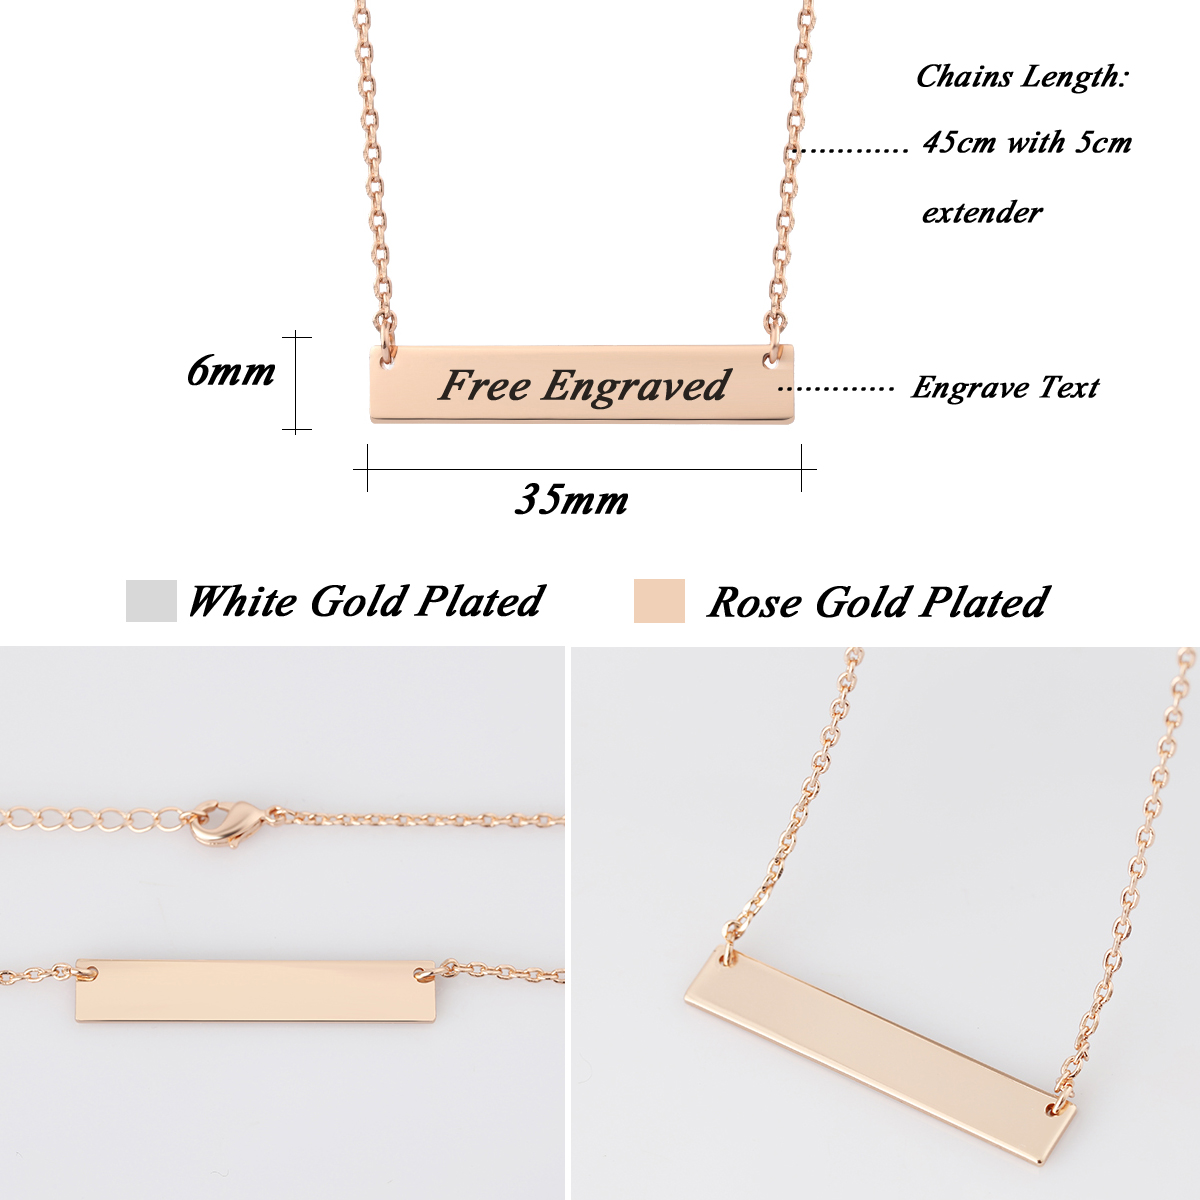 pin engraved message chains thejewelleryboutique com necklace